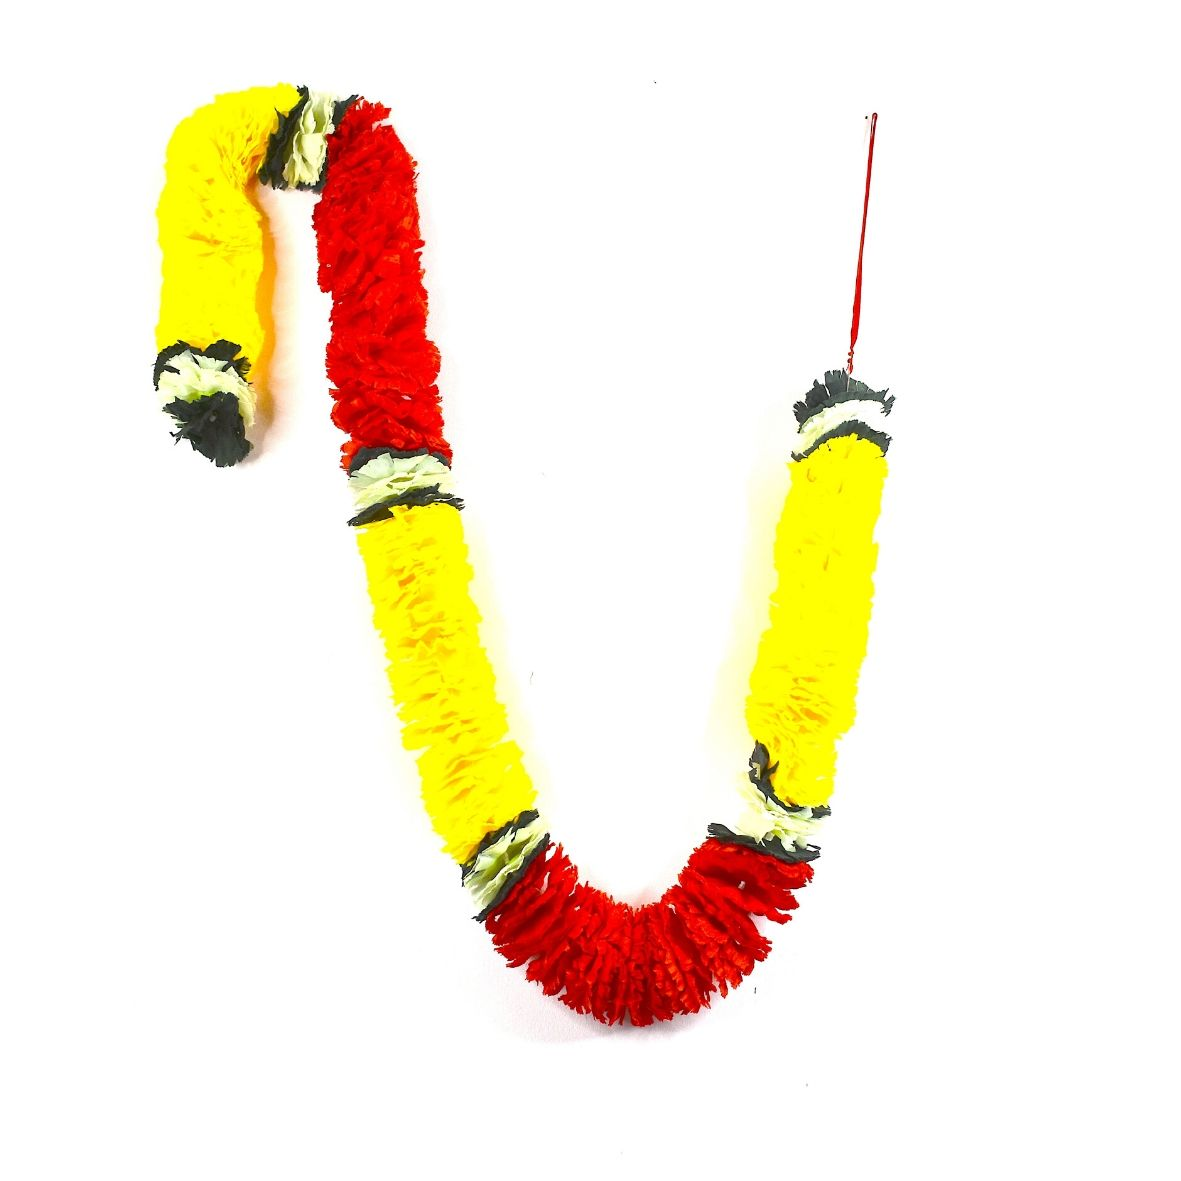 1 x Yellow / Red / Green & Lime Artificial Petal Garland (180cm Long)